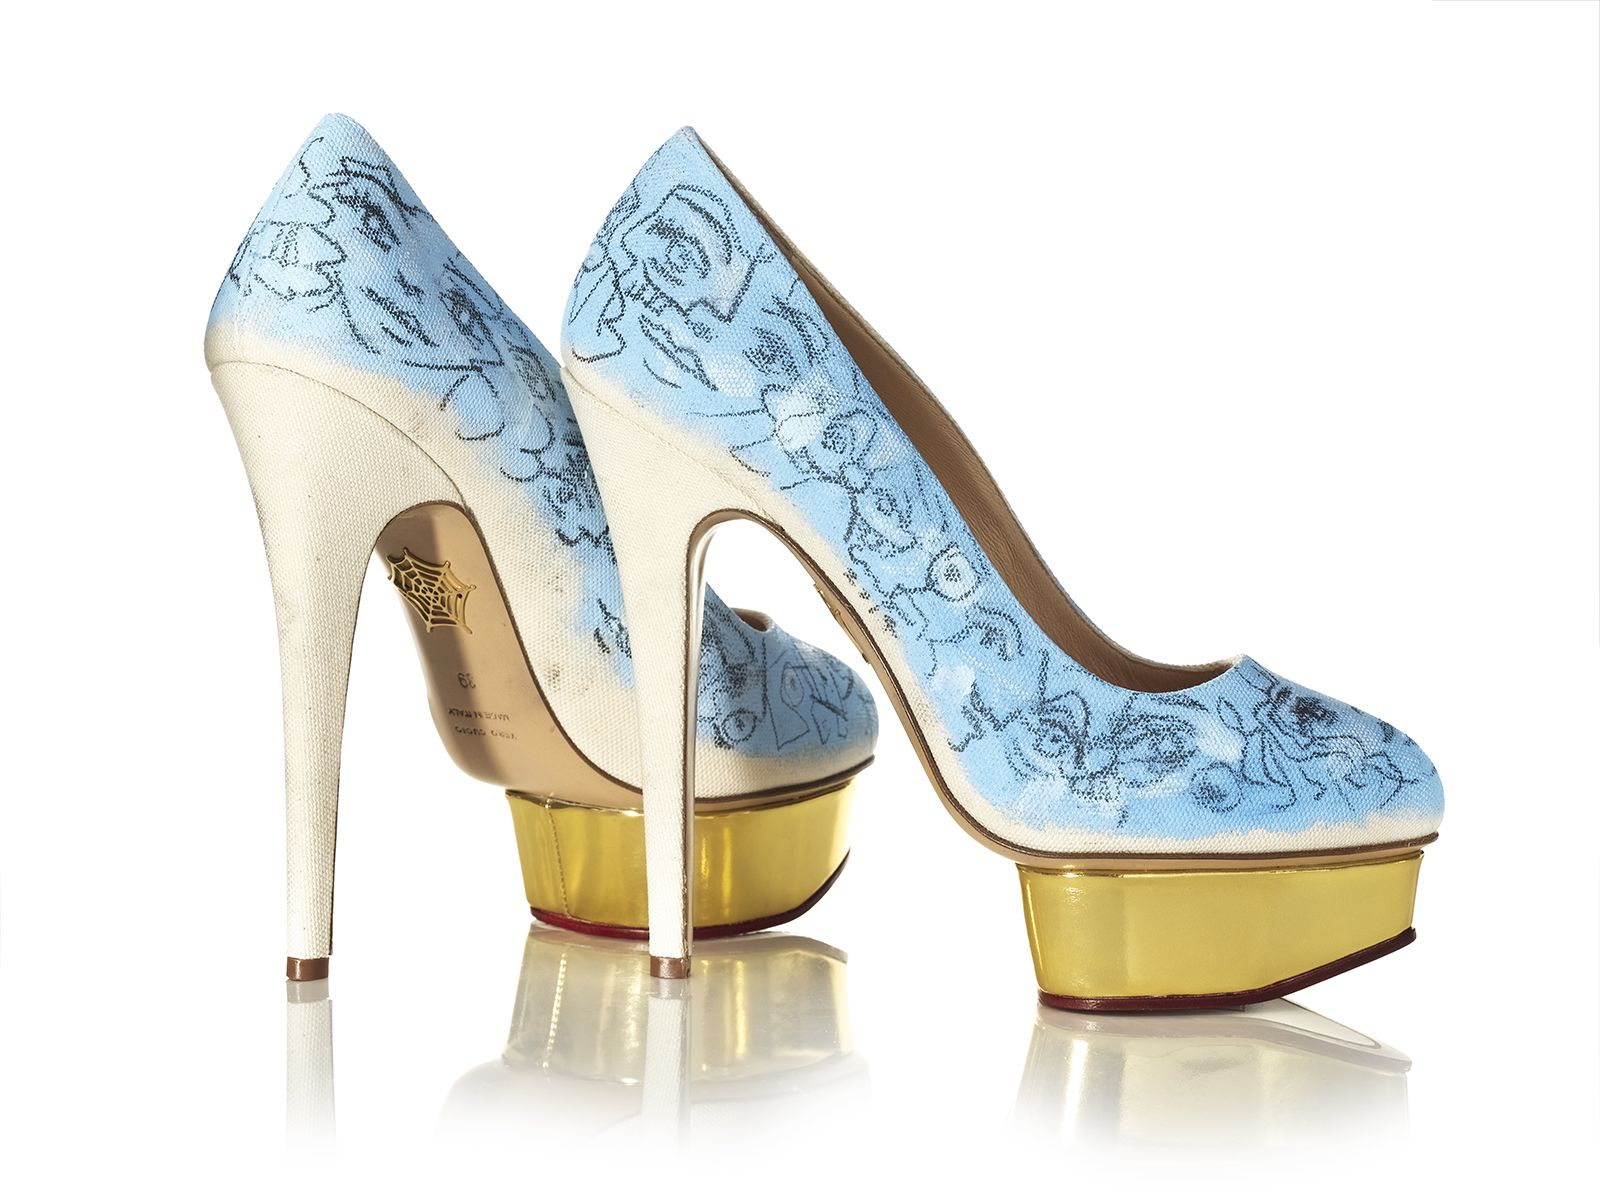 India Wolf and Charlotte Olympia got a bunch of famous artists to decorate high heels. Another example of teenagers working with contemporary artists to create art.